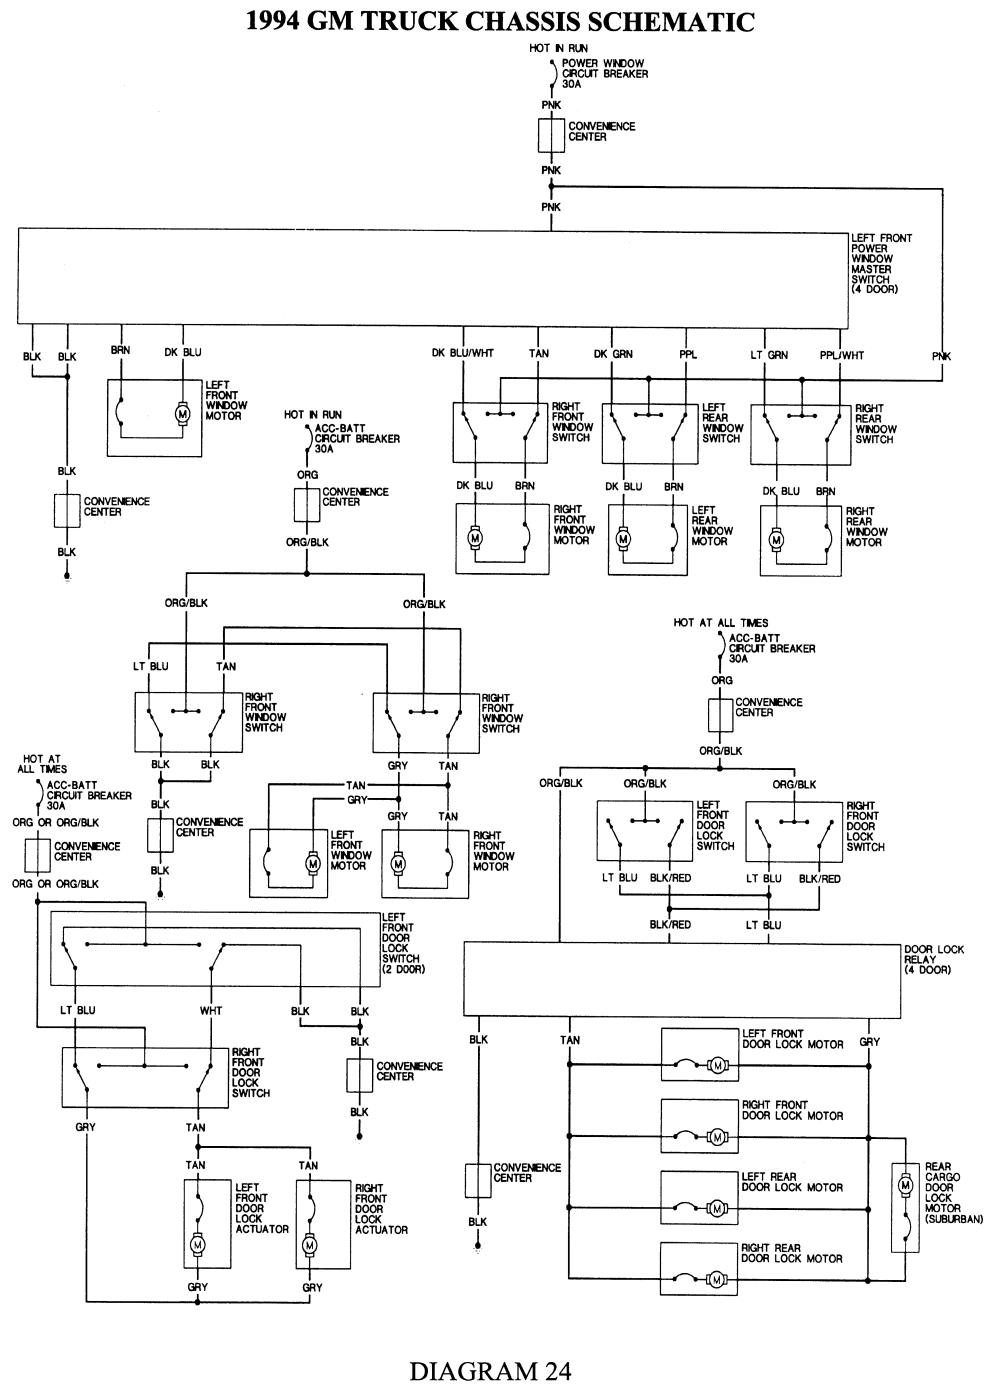 Pioneer Mvh Av290bt Wiring Diagram Free Schematic Repair Guides Diagrams Beautiful Trailer